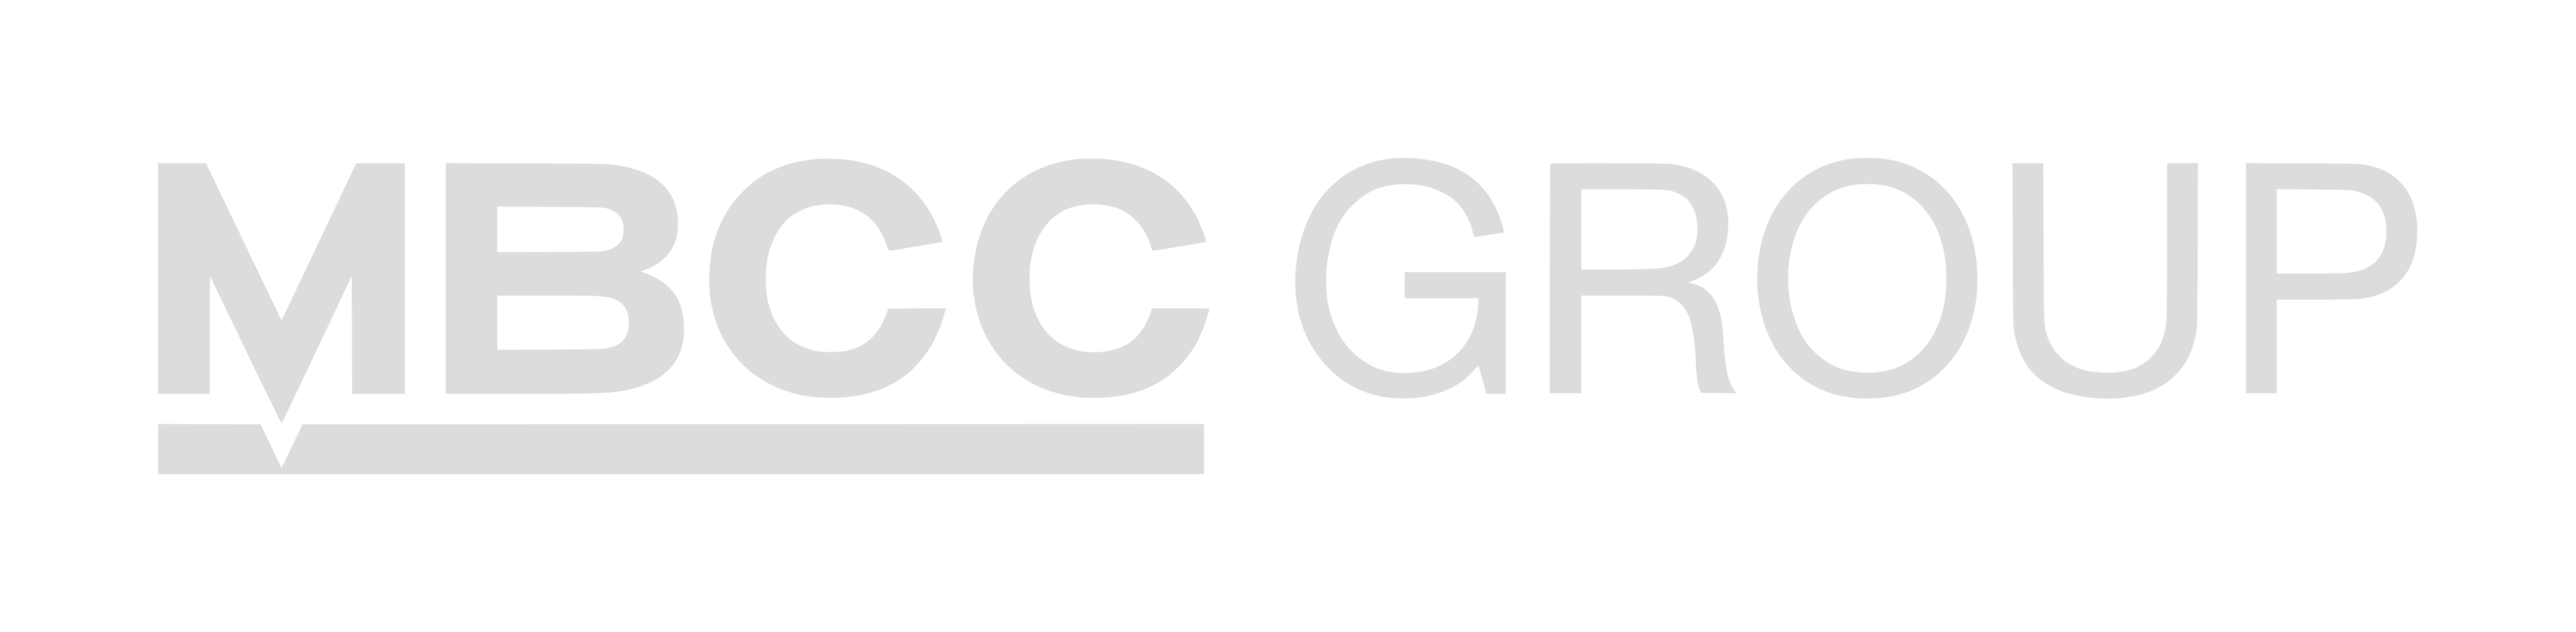 mbcc-group-logo-grey